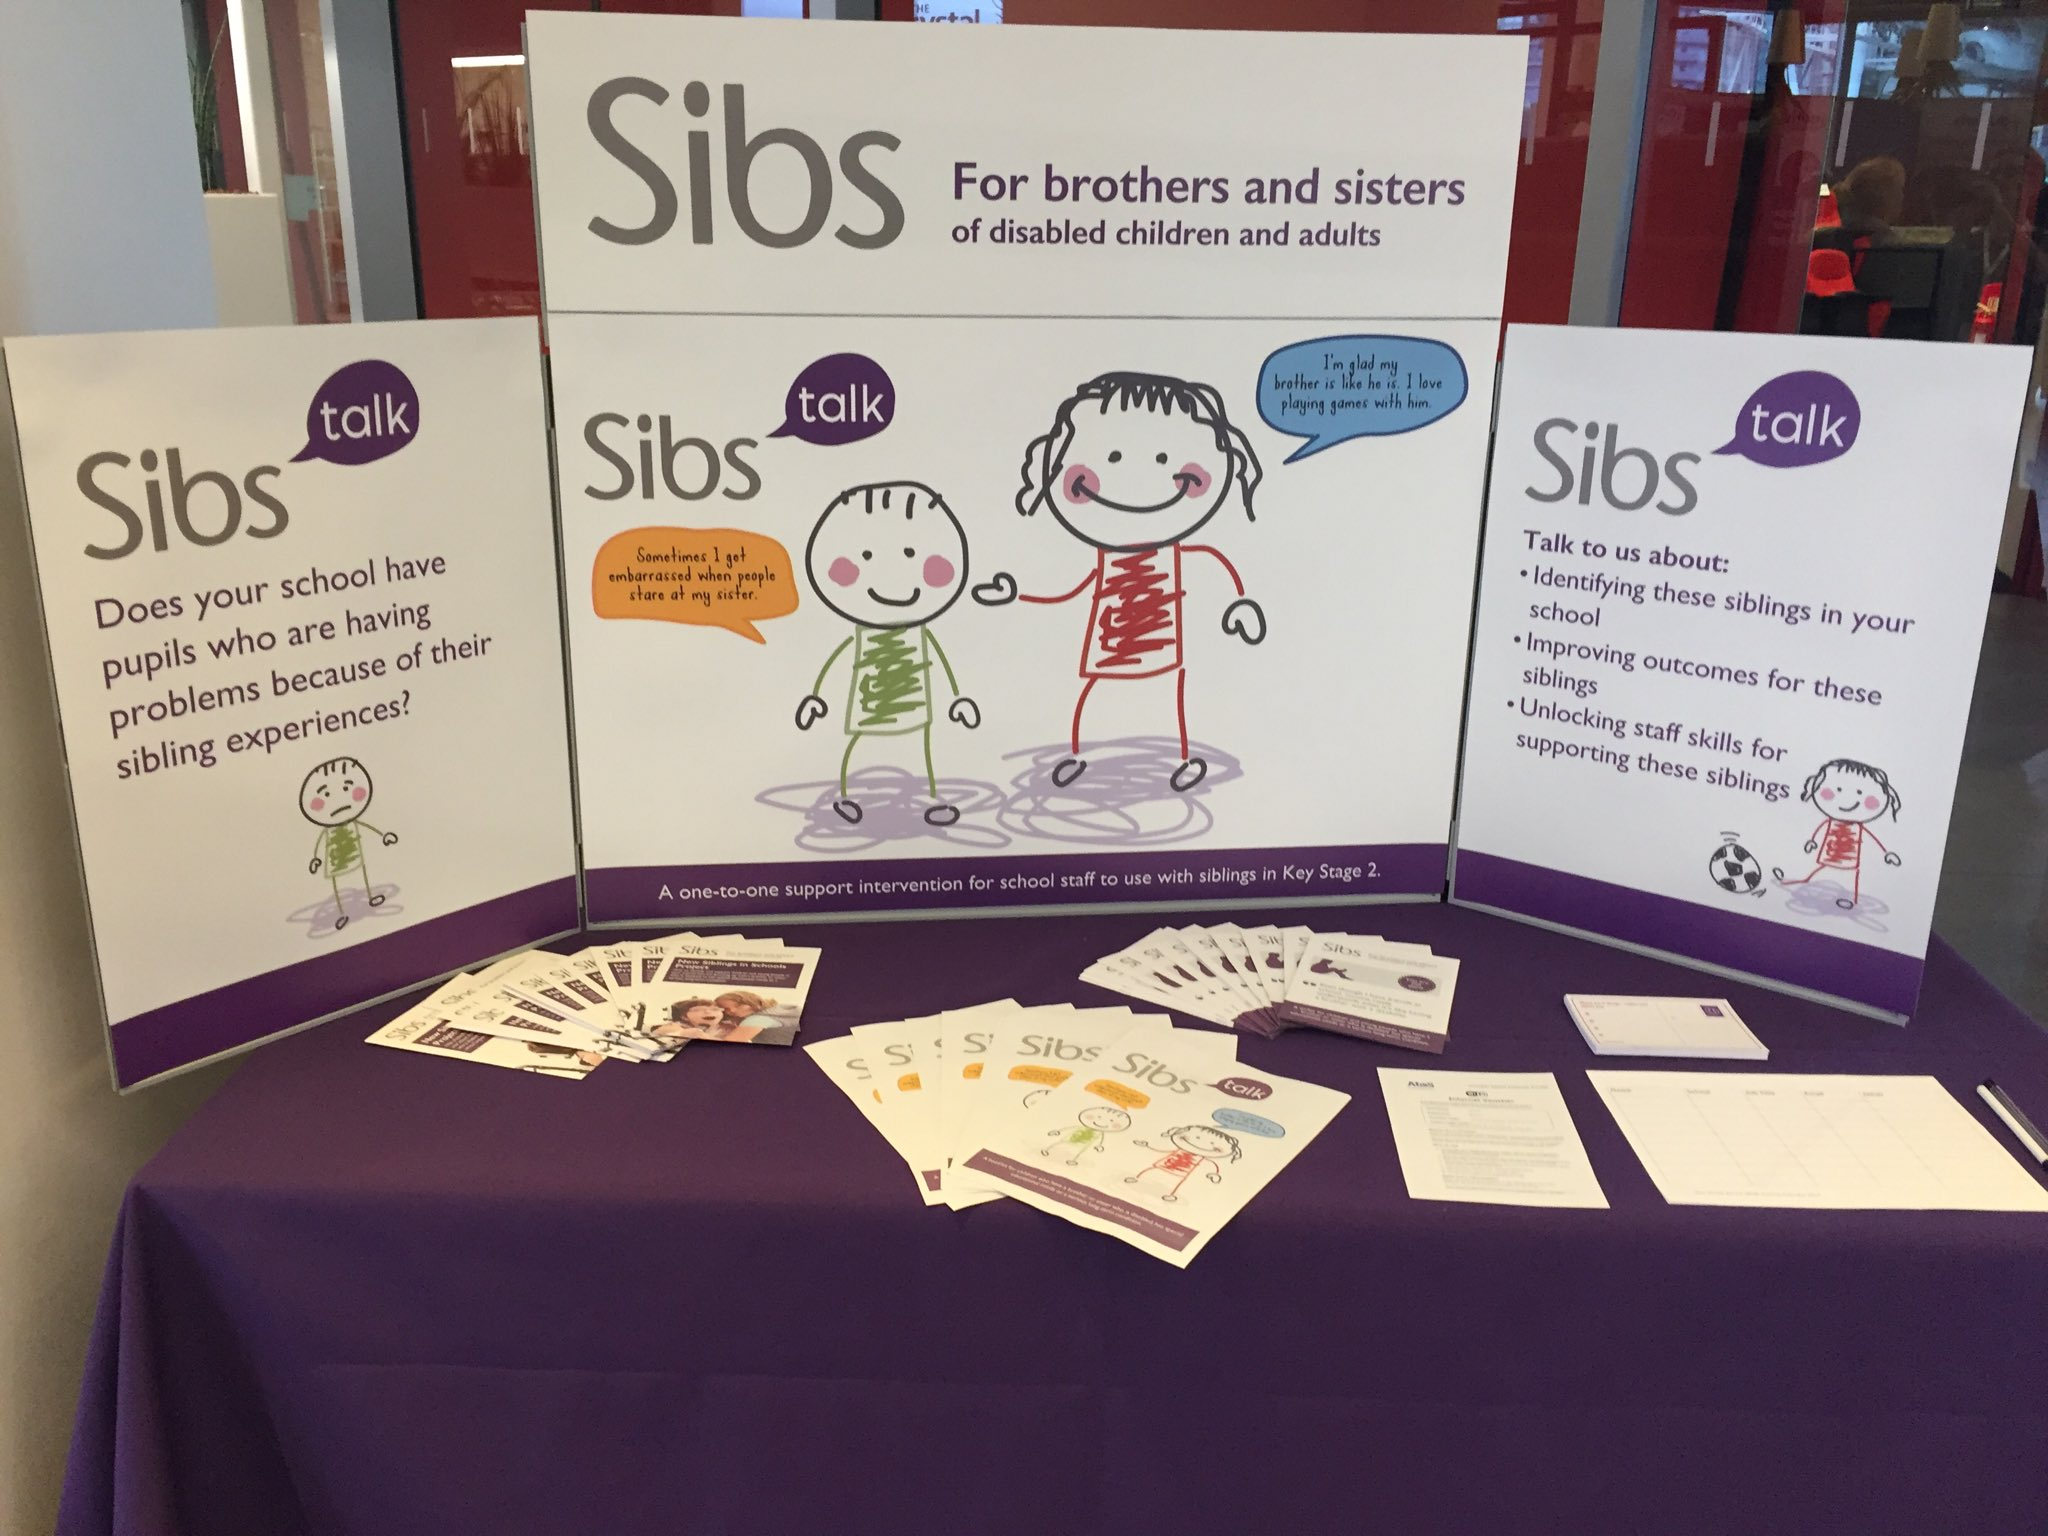 Visit our stand and talk to us about Sibs Talk intervention for primary school siblings at #SENDsummit today https://t.co/es428zpGRp